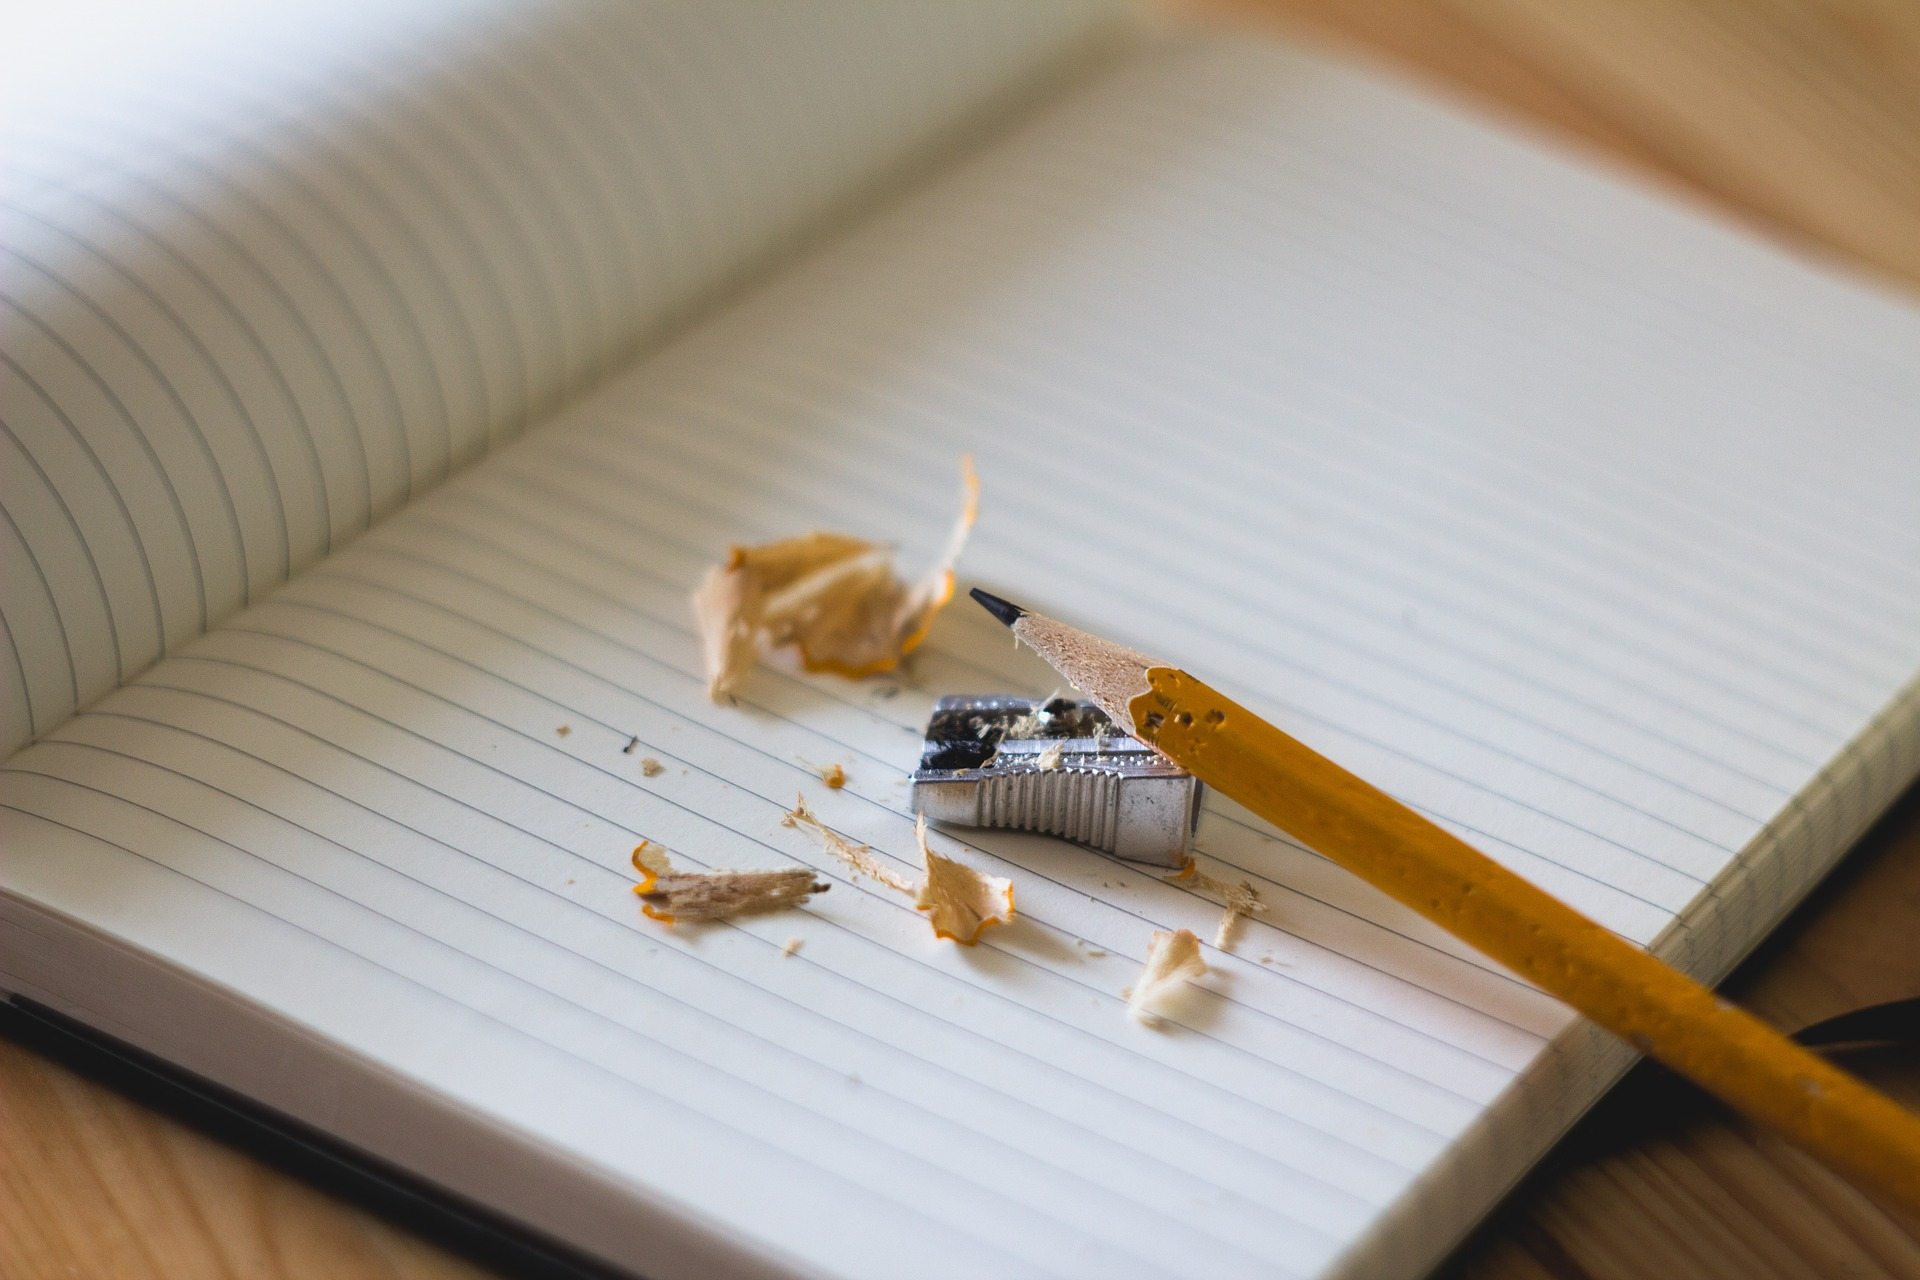 For Those Who Write Short: How to Lengthen Your Manuscript